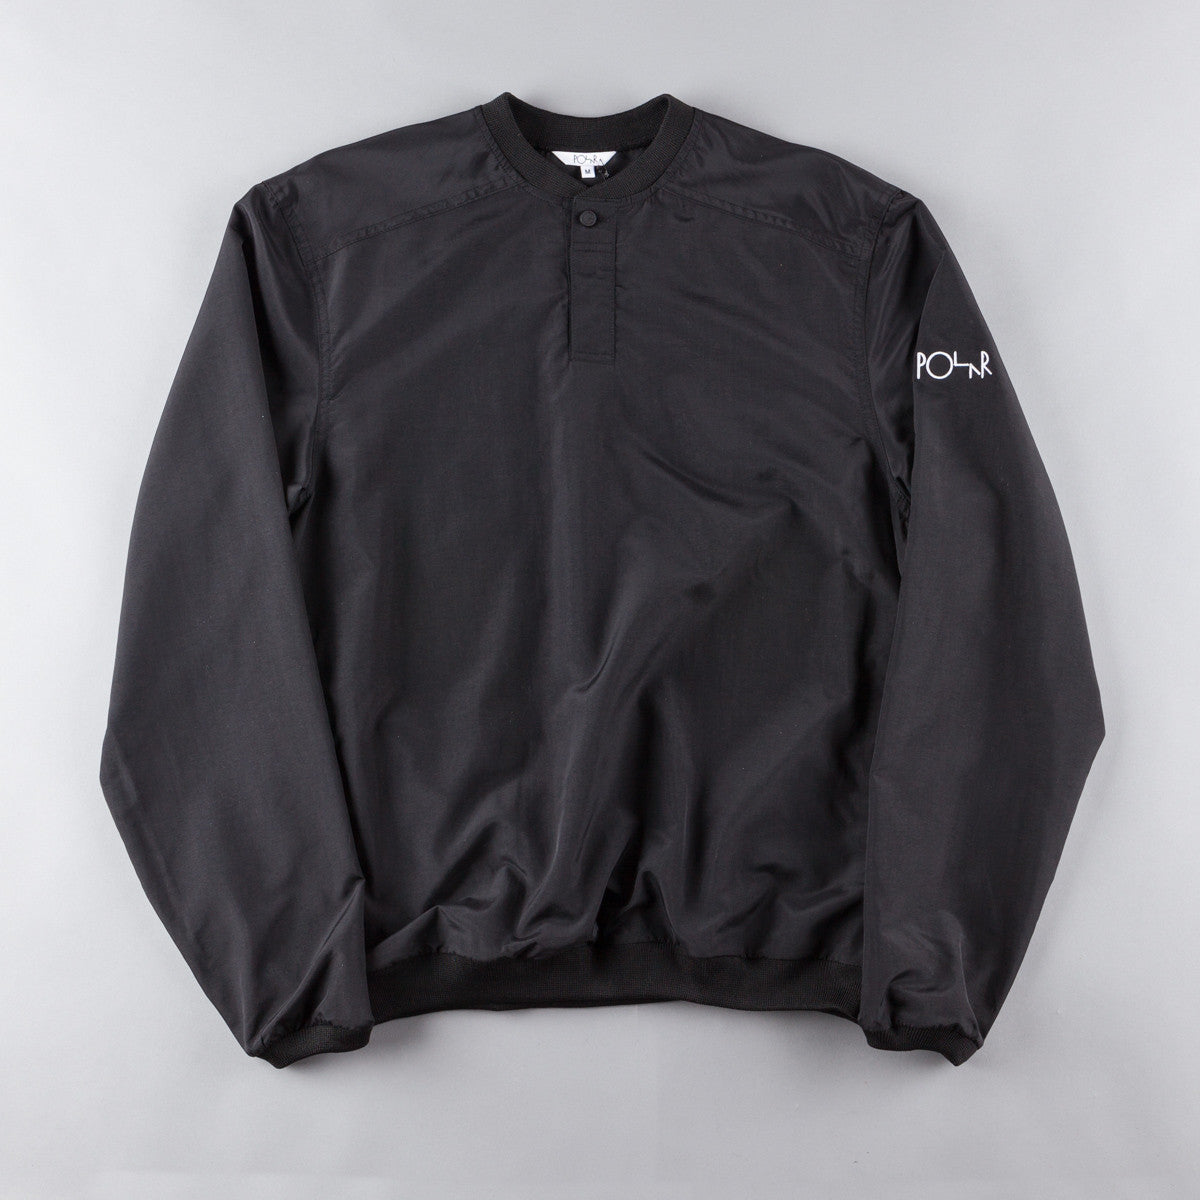 Polar Golf Club Pullover Sweatshirt - Black